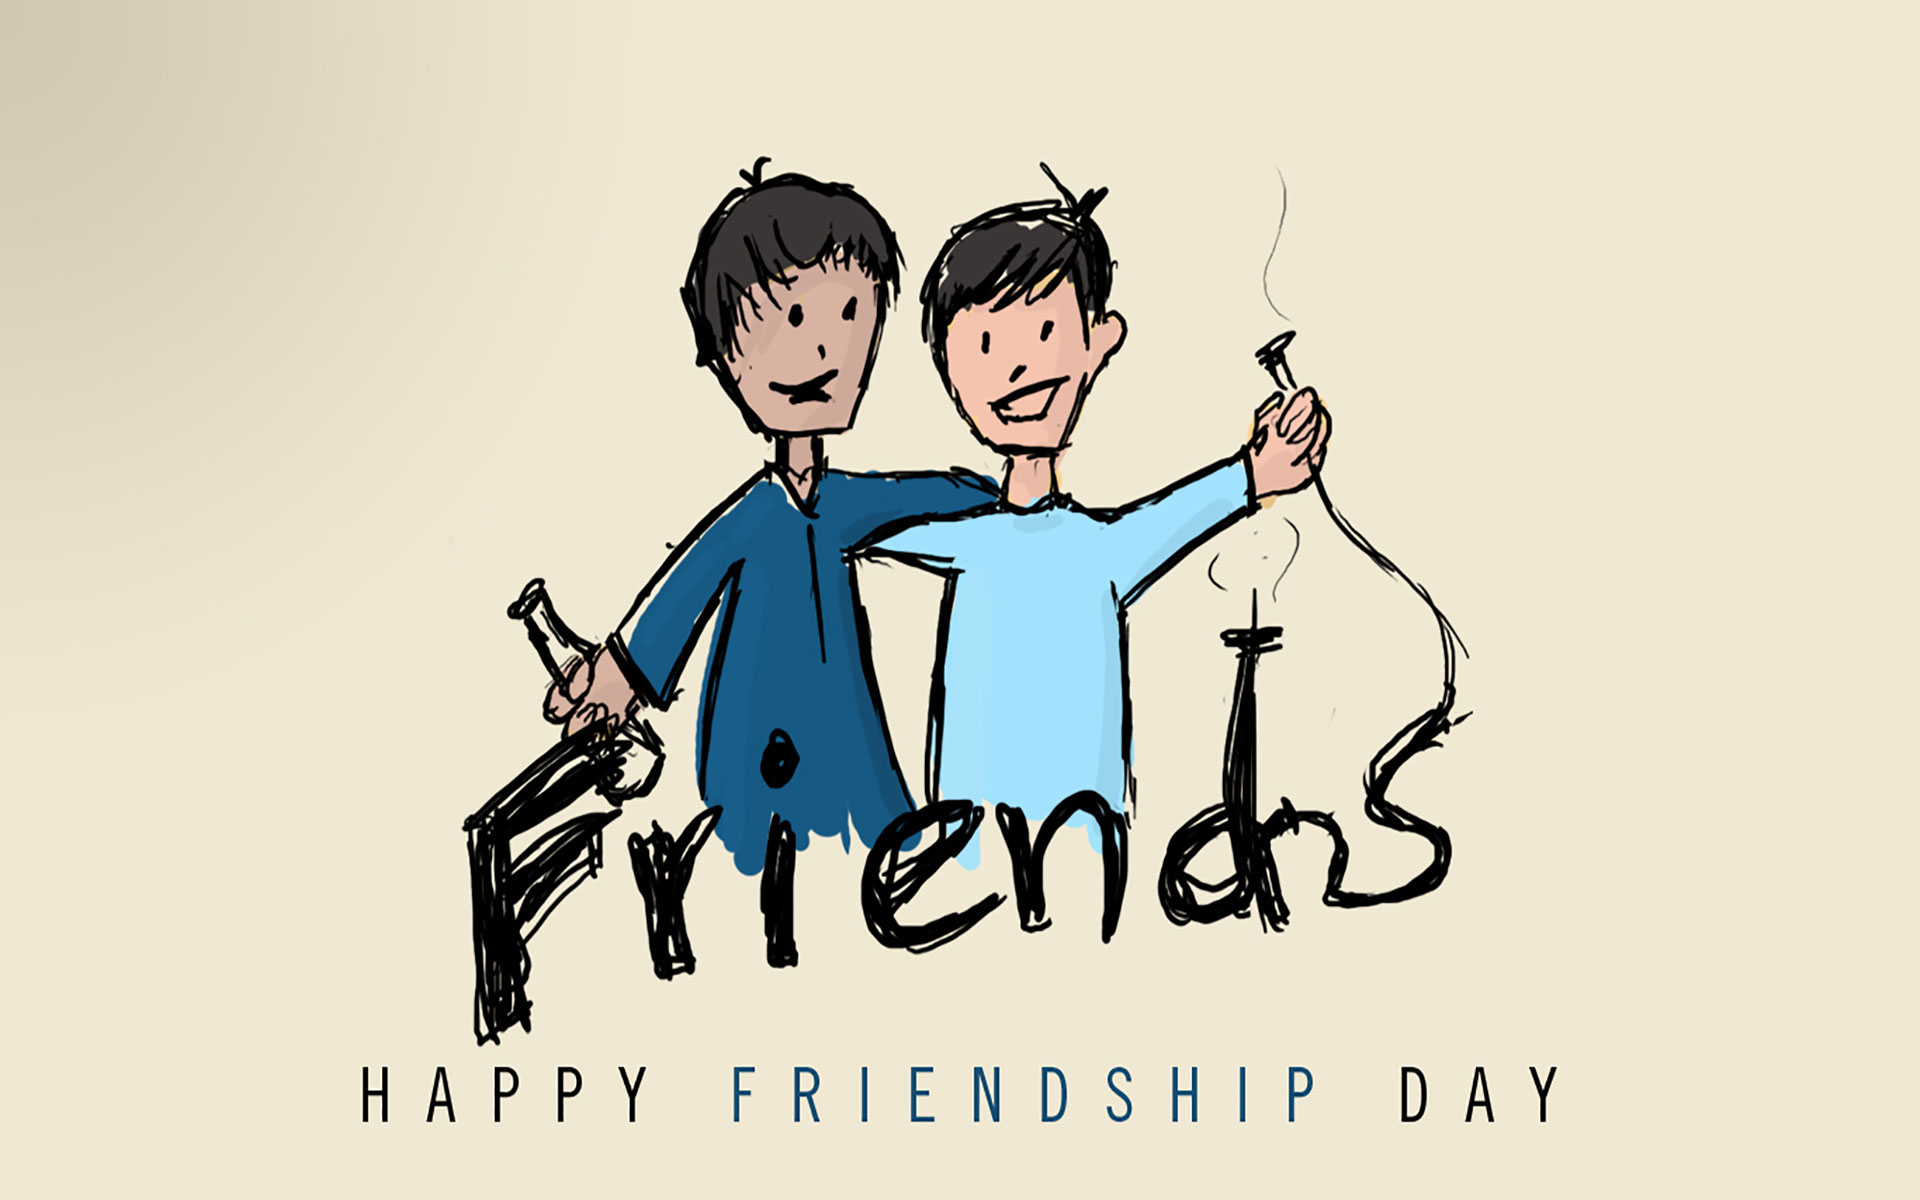 20 Happy Friendship Day Wallpapers With Quotes